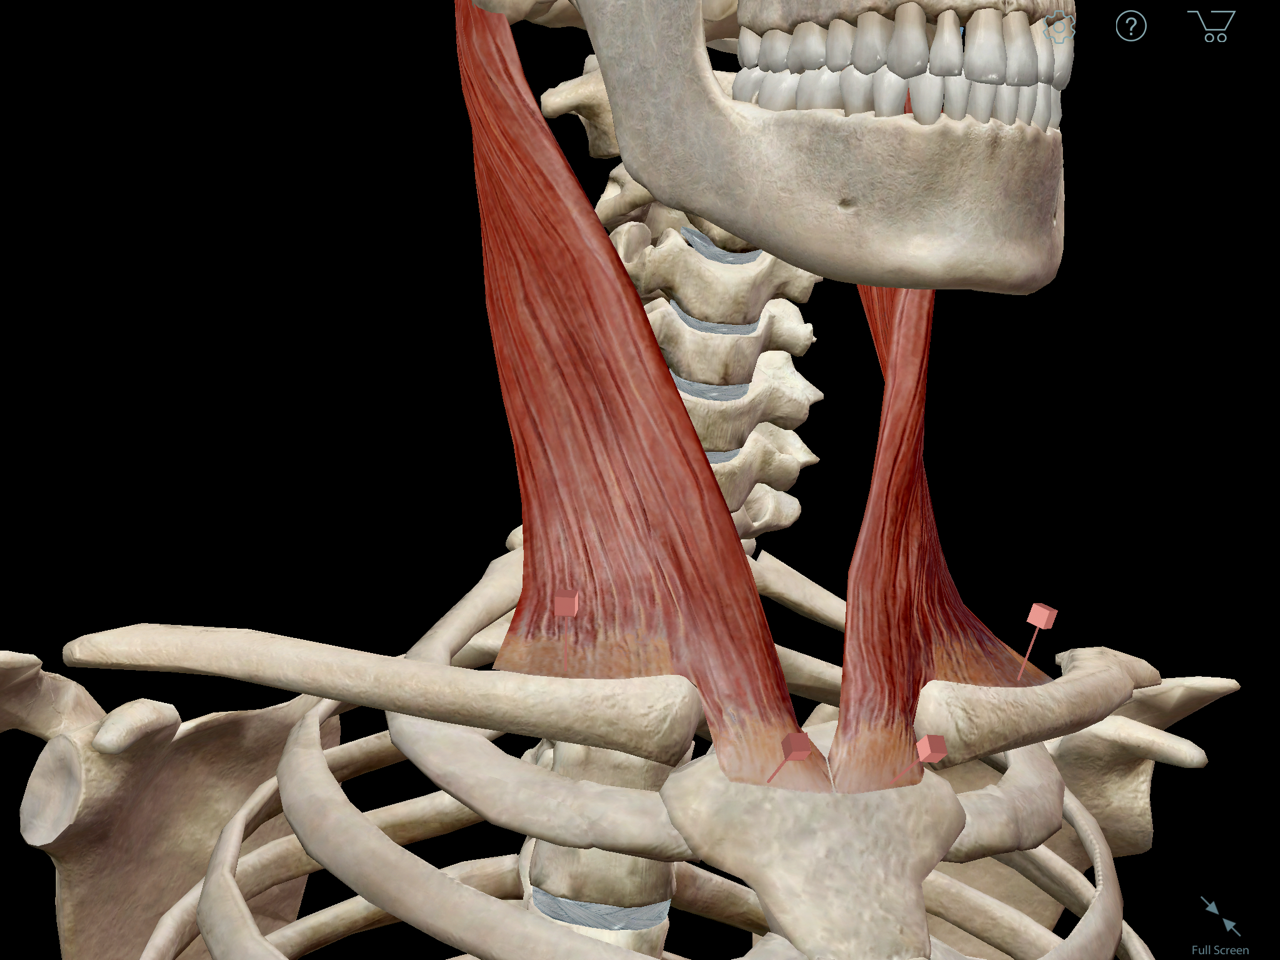 sternocleidomastoid-origin-insertion.png